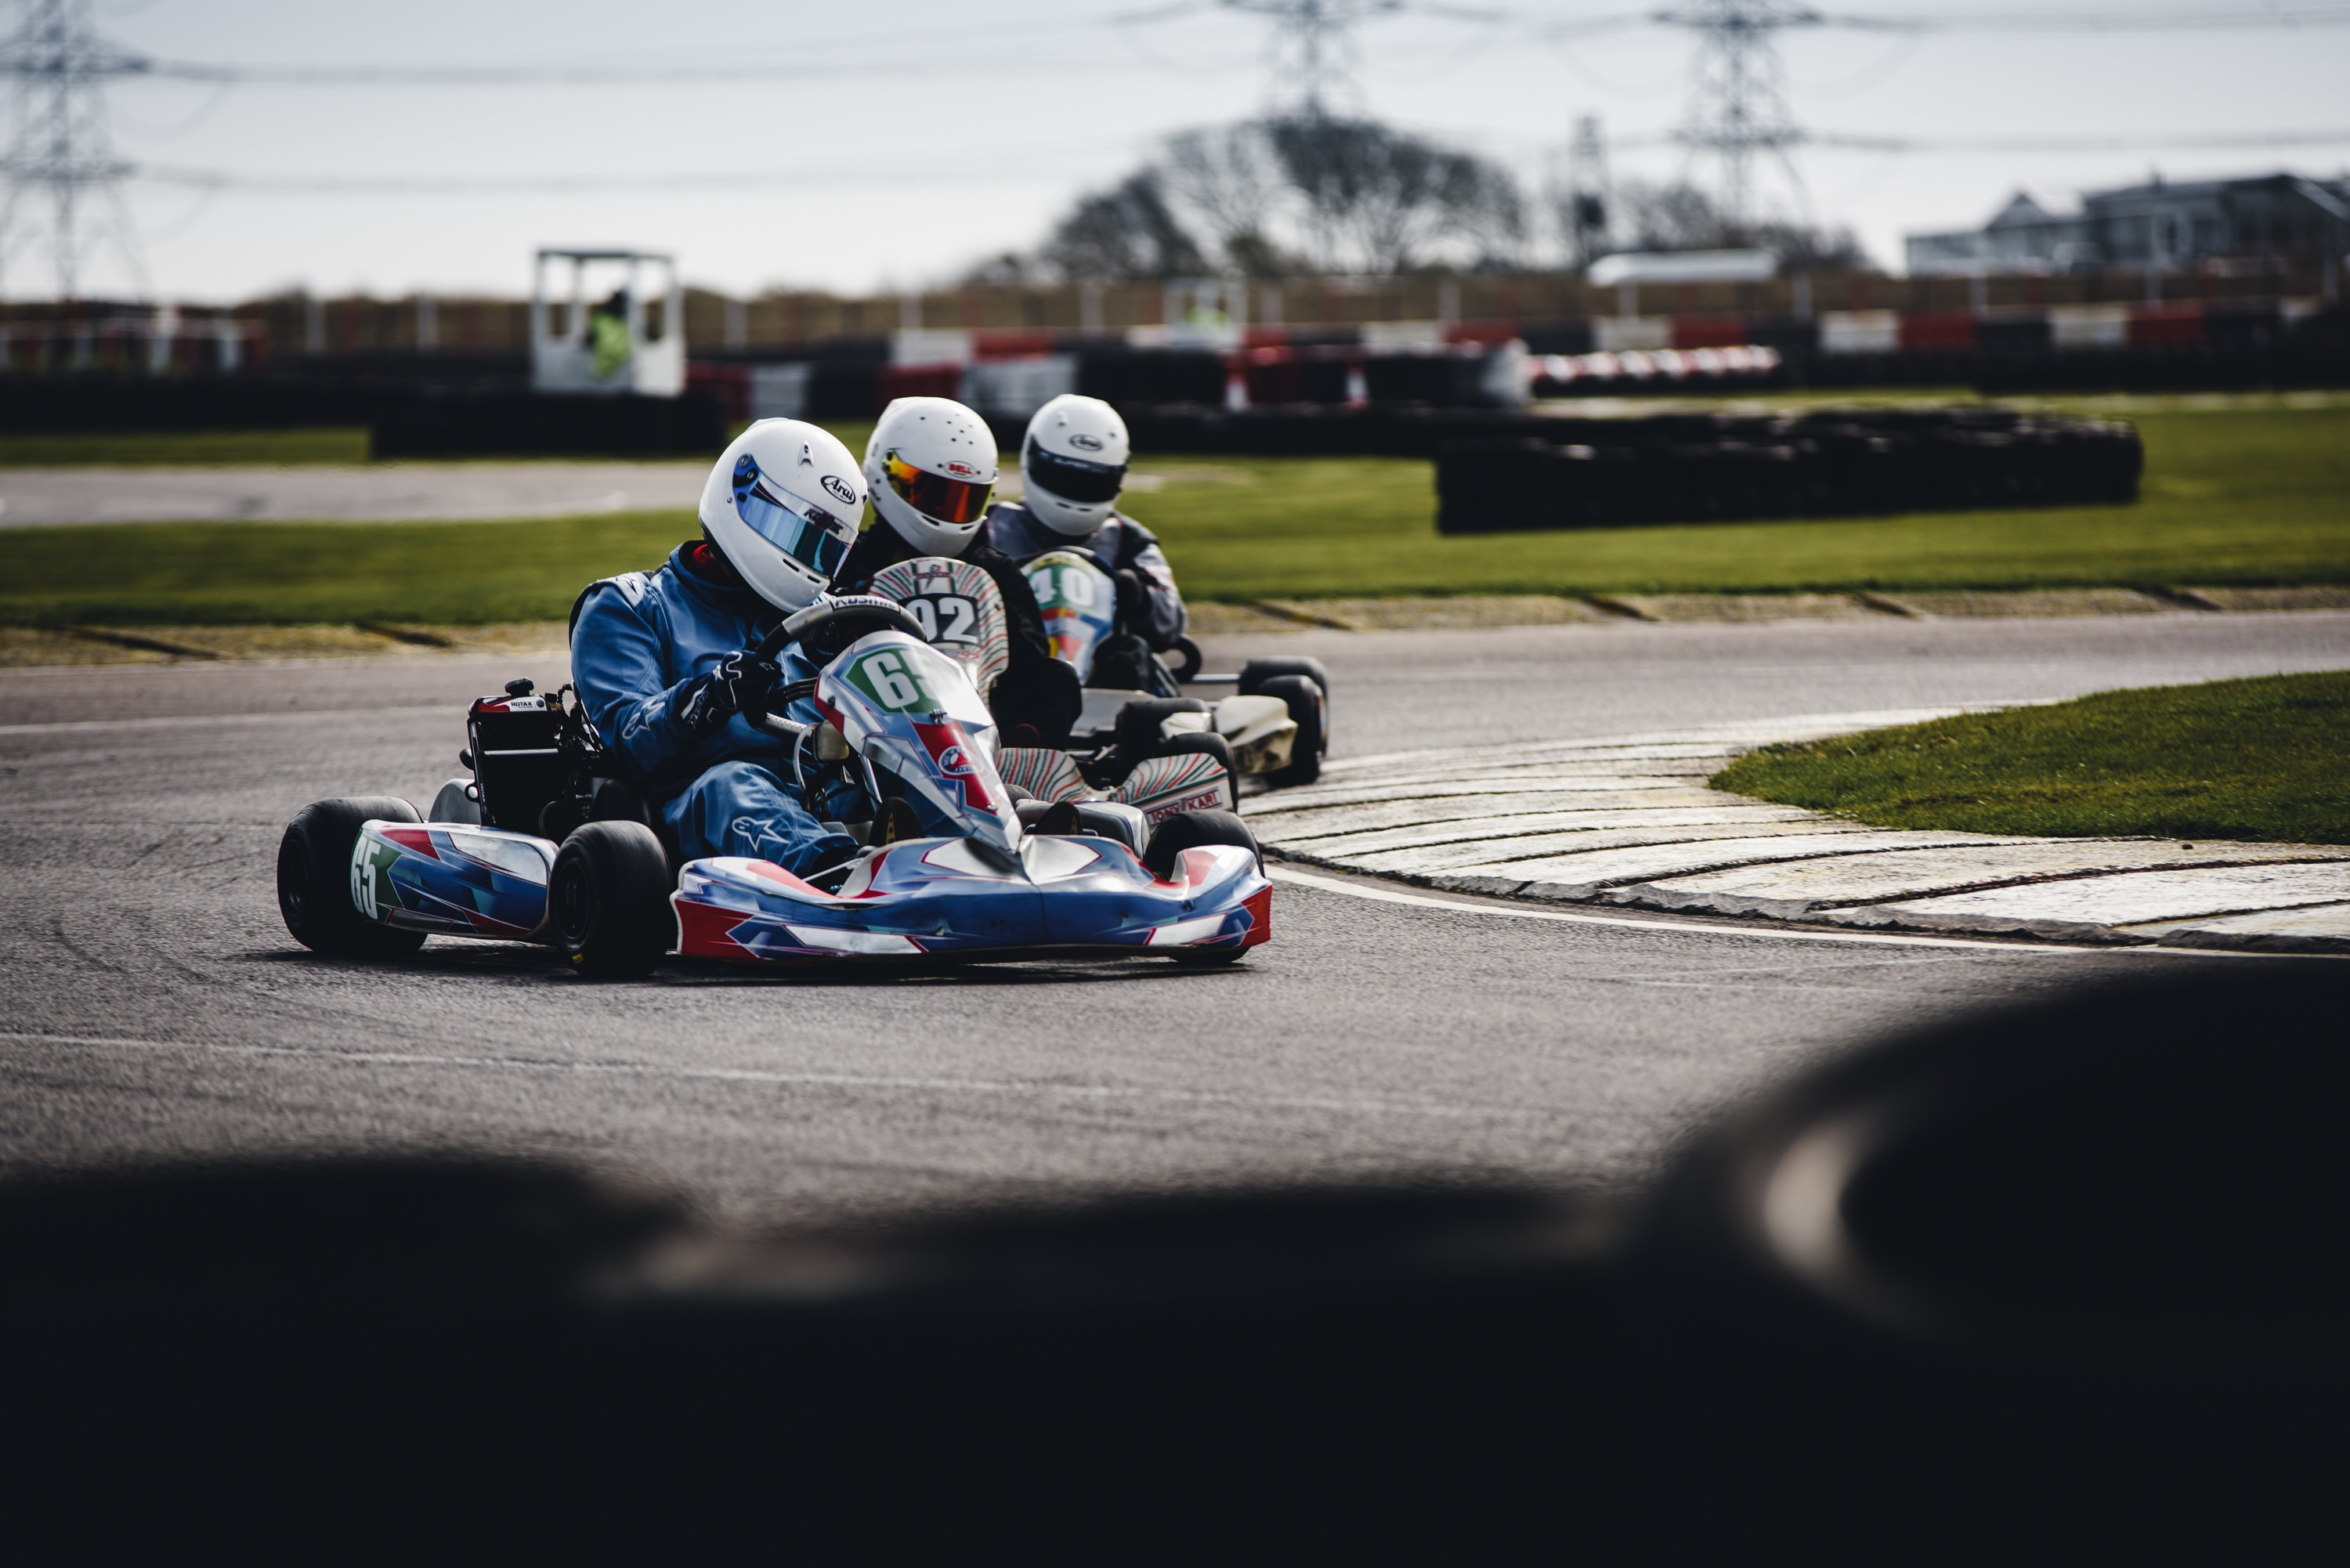 The Pros and Cons of Opening a Go-Karting Business in 2021